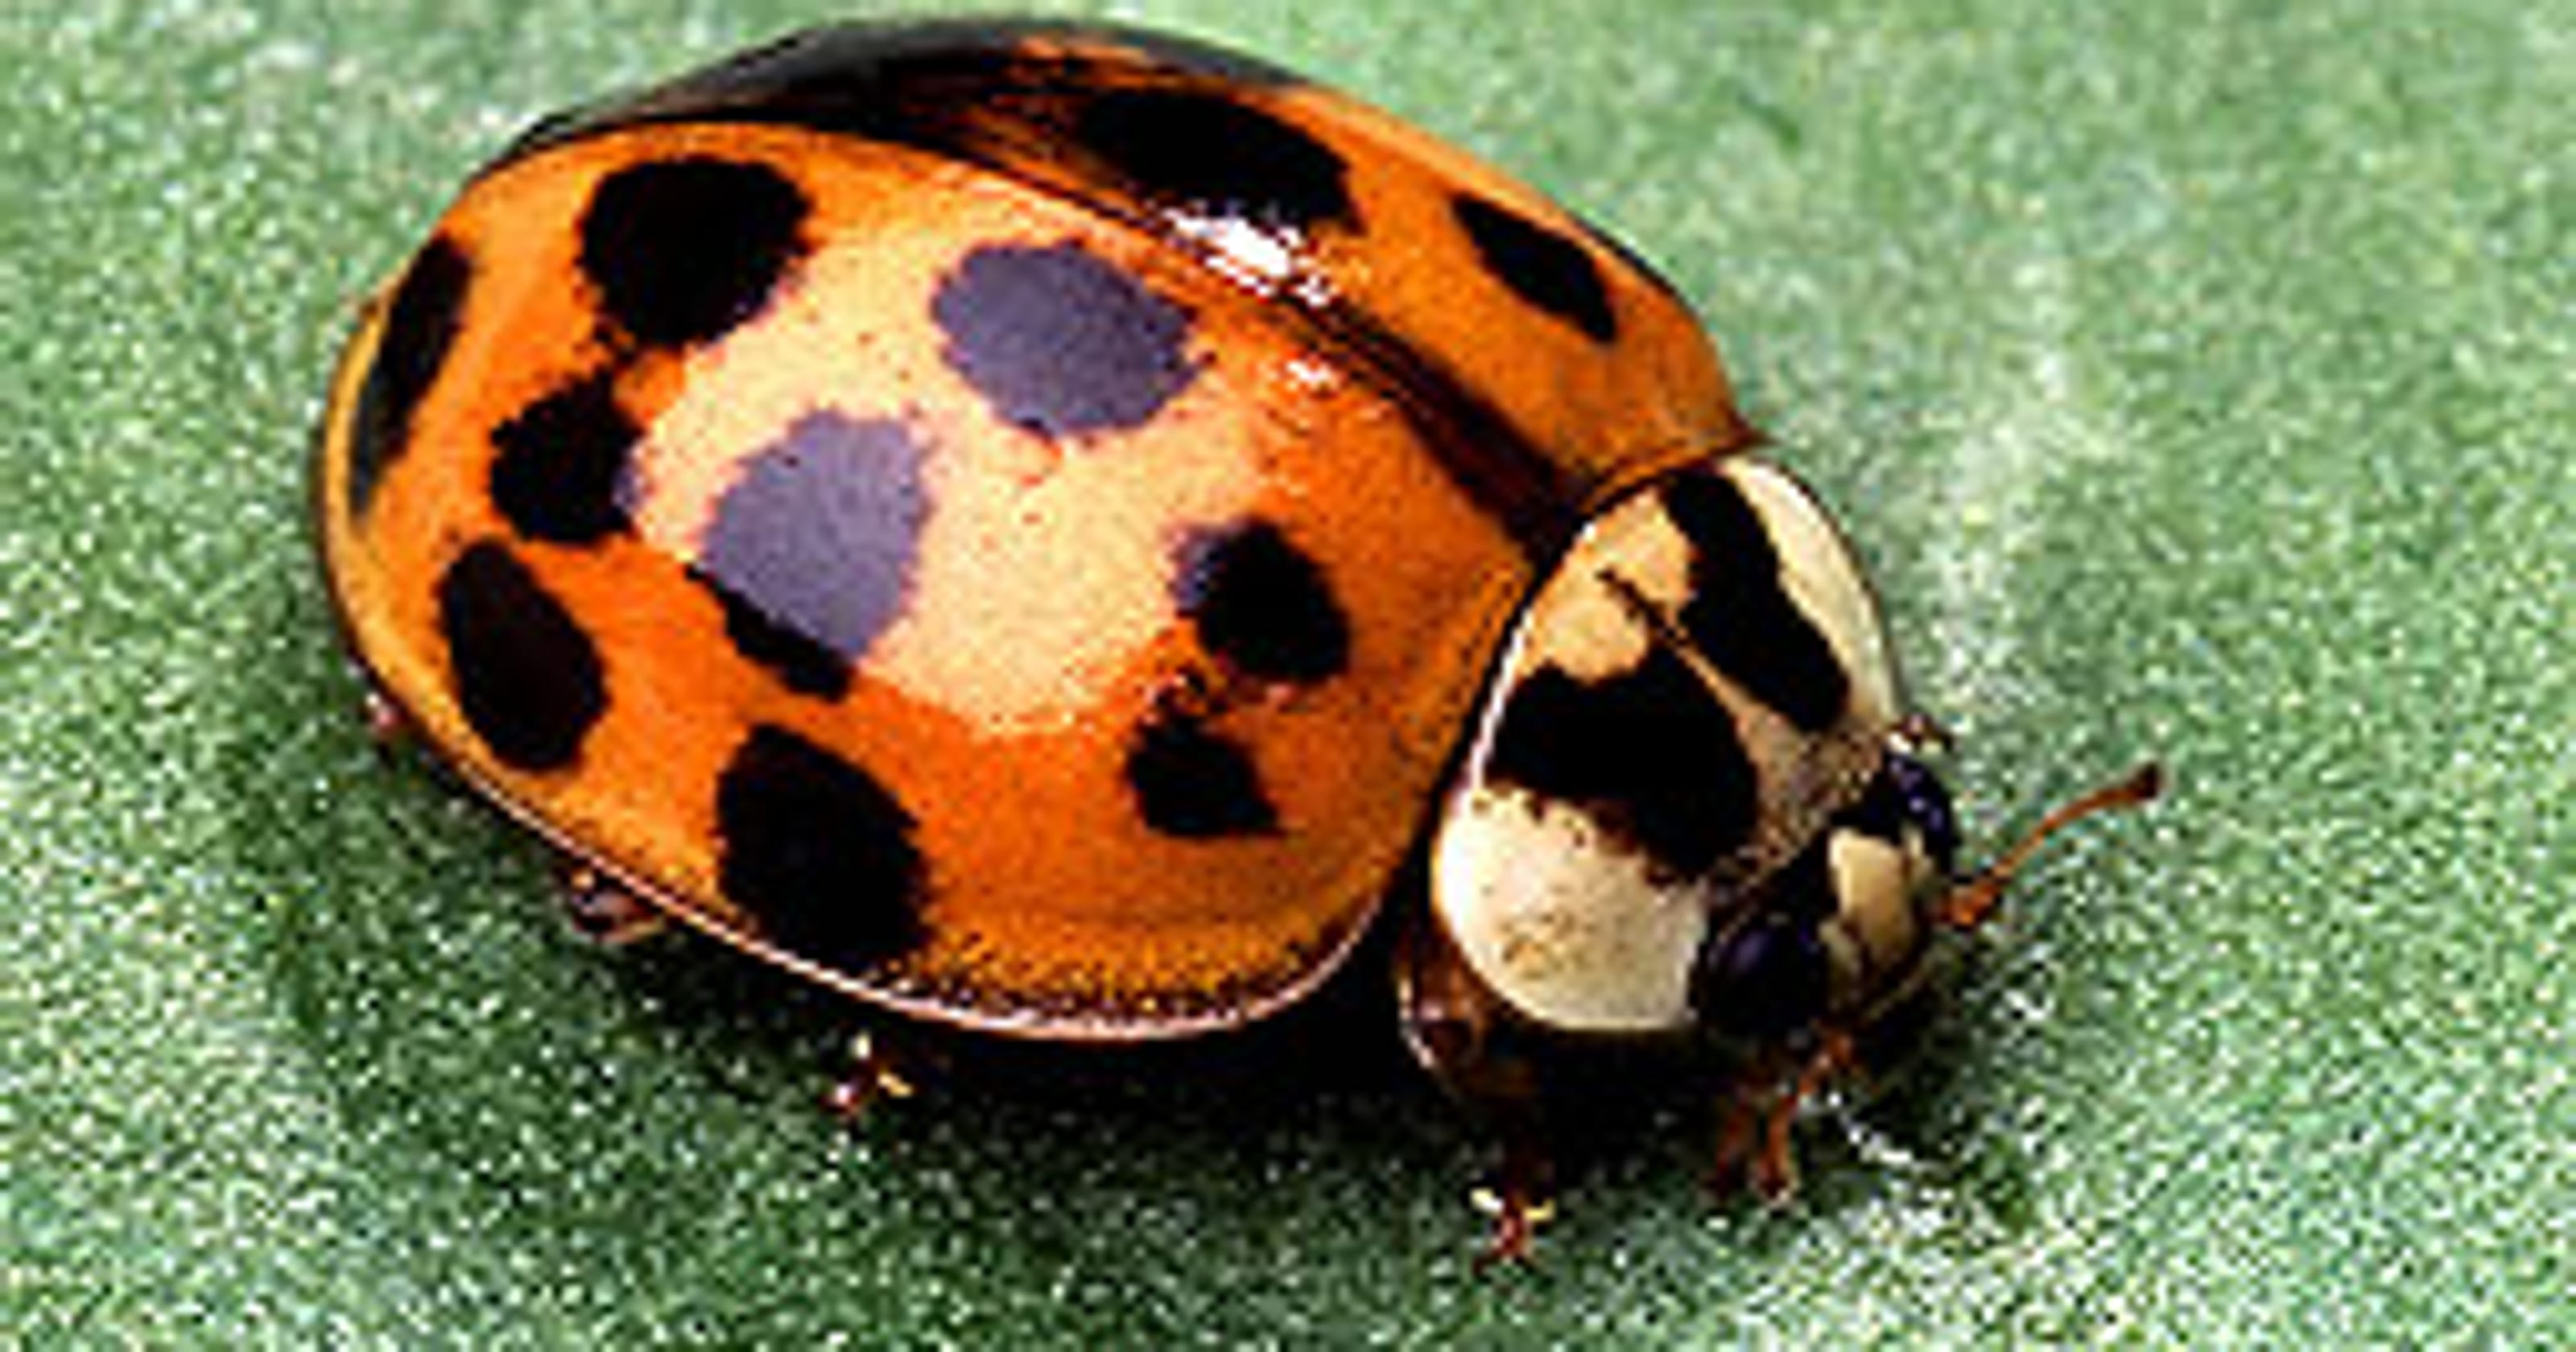 Asian lady beetles are invasive insect bullies that stink, bite